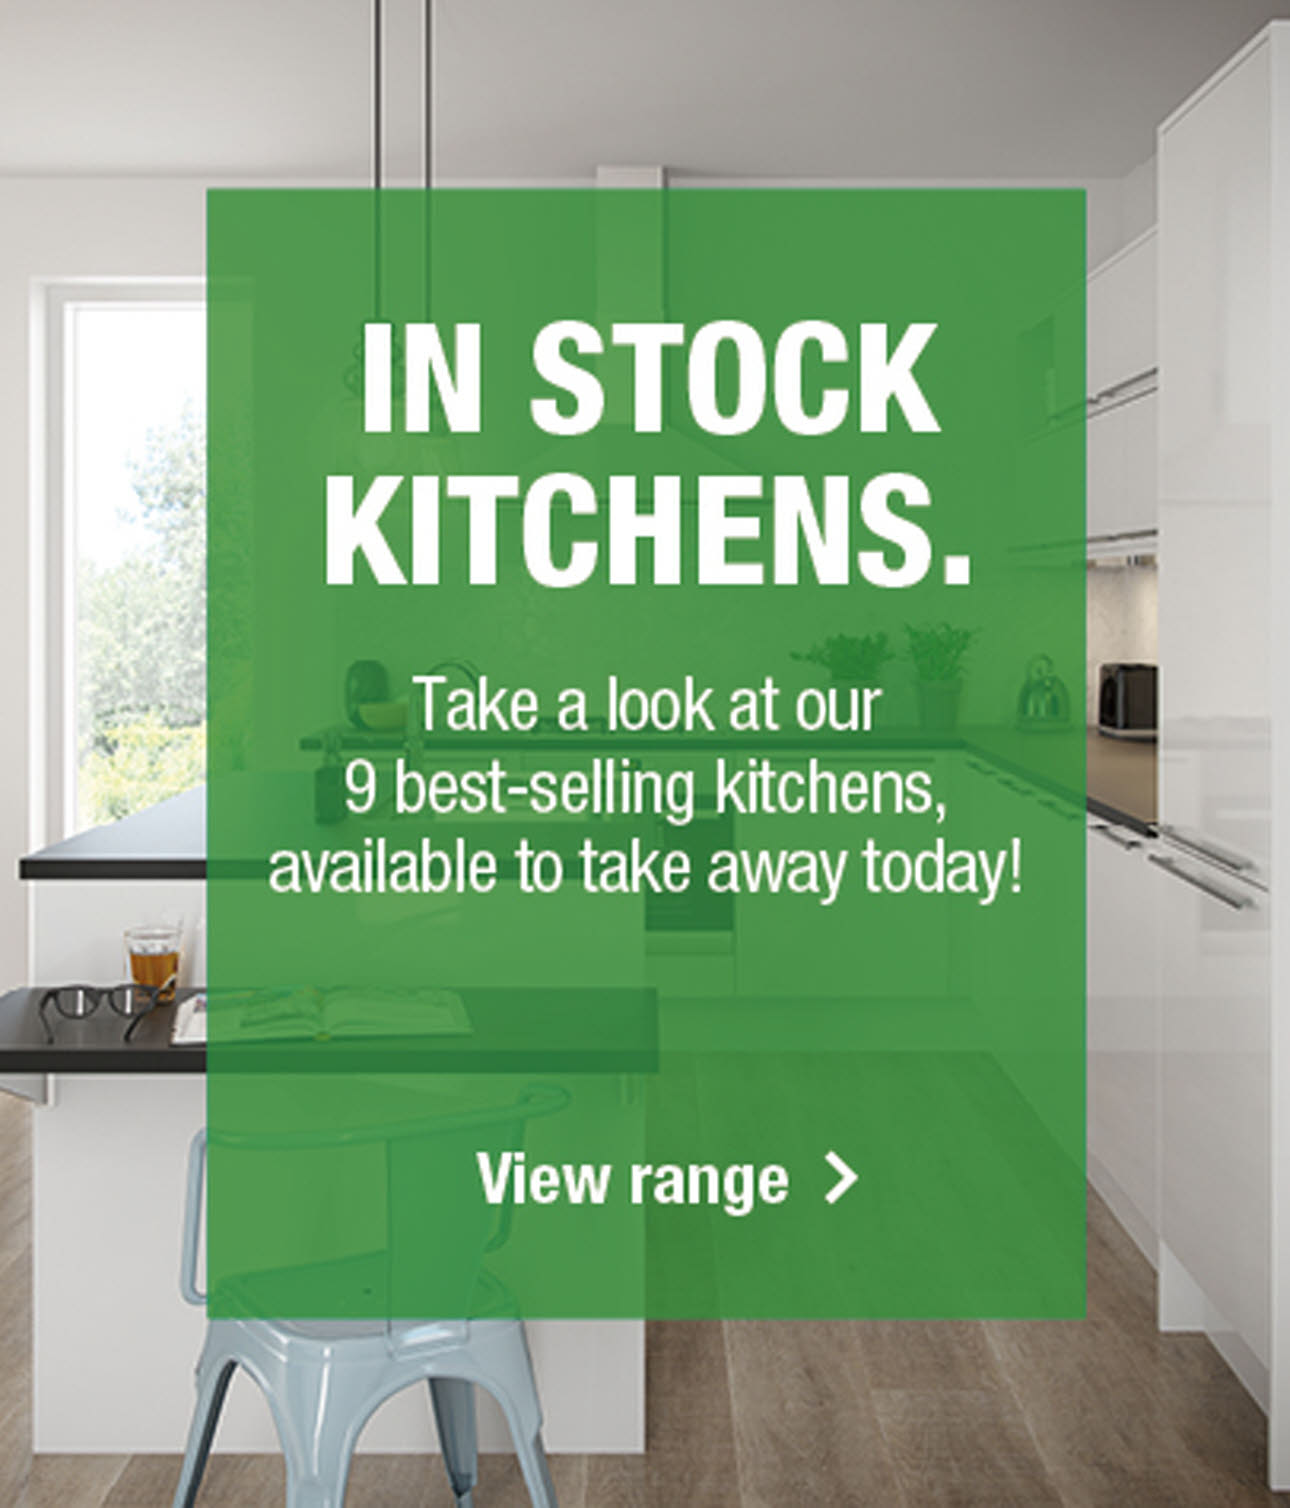 In Stock kitchens